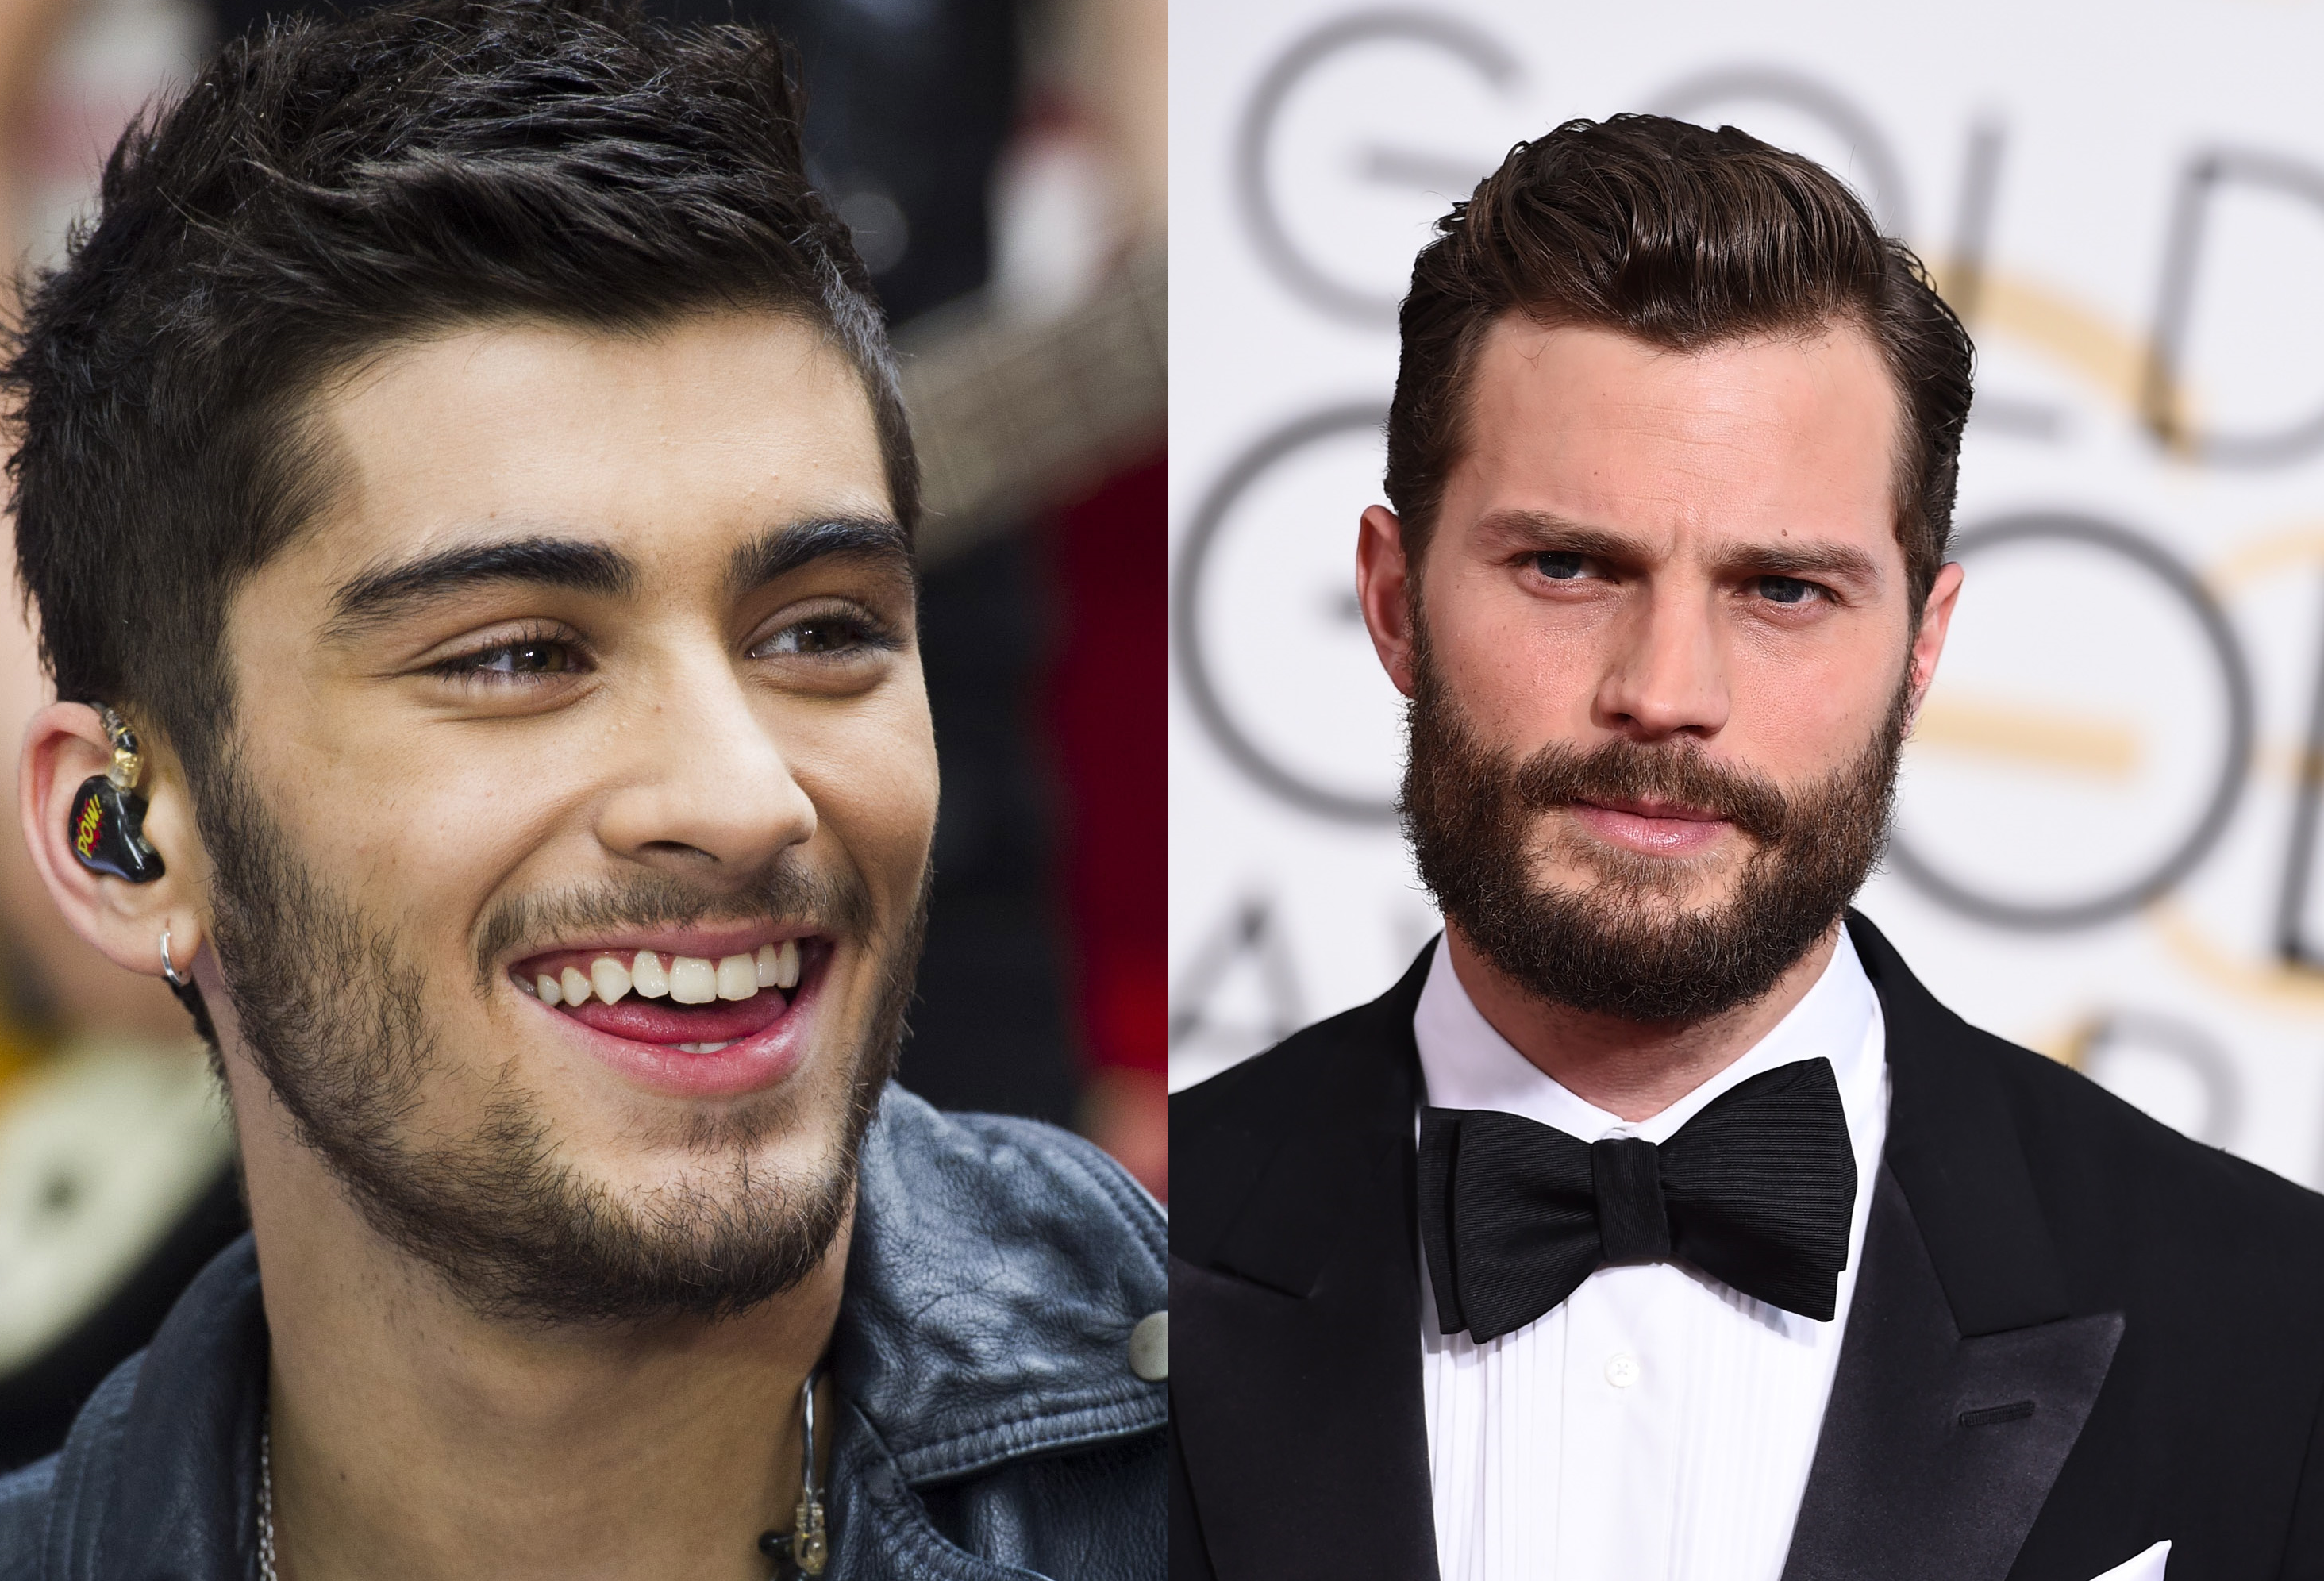 Jamie Dornan and Zayn Malik AP